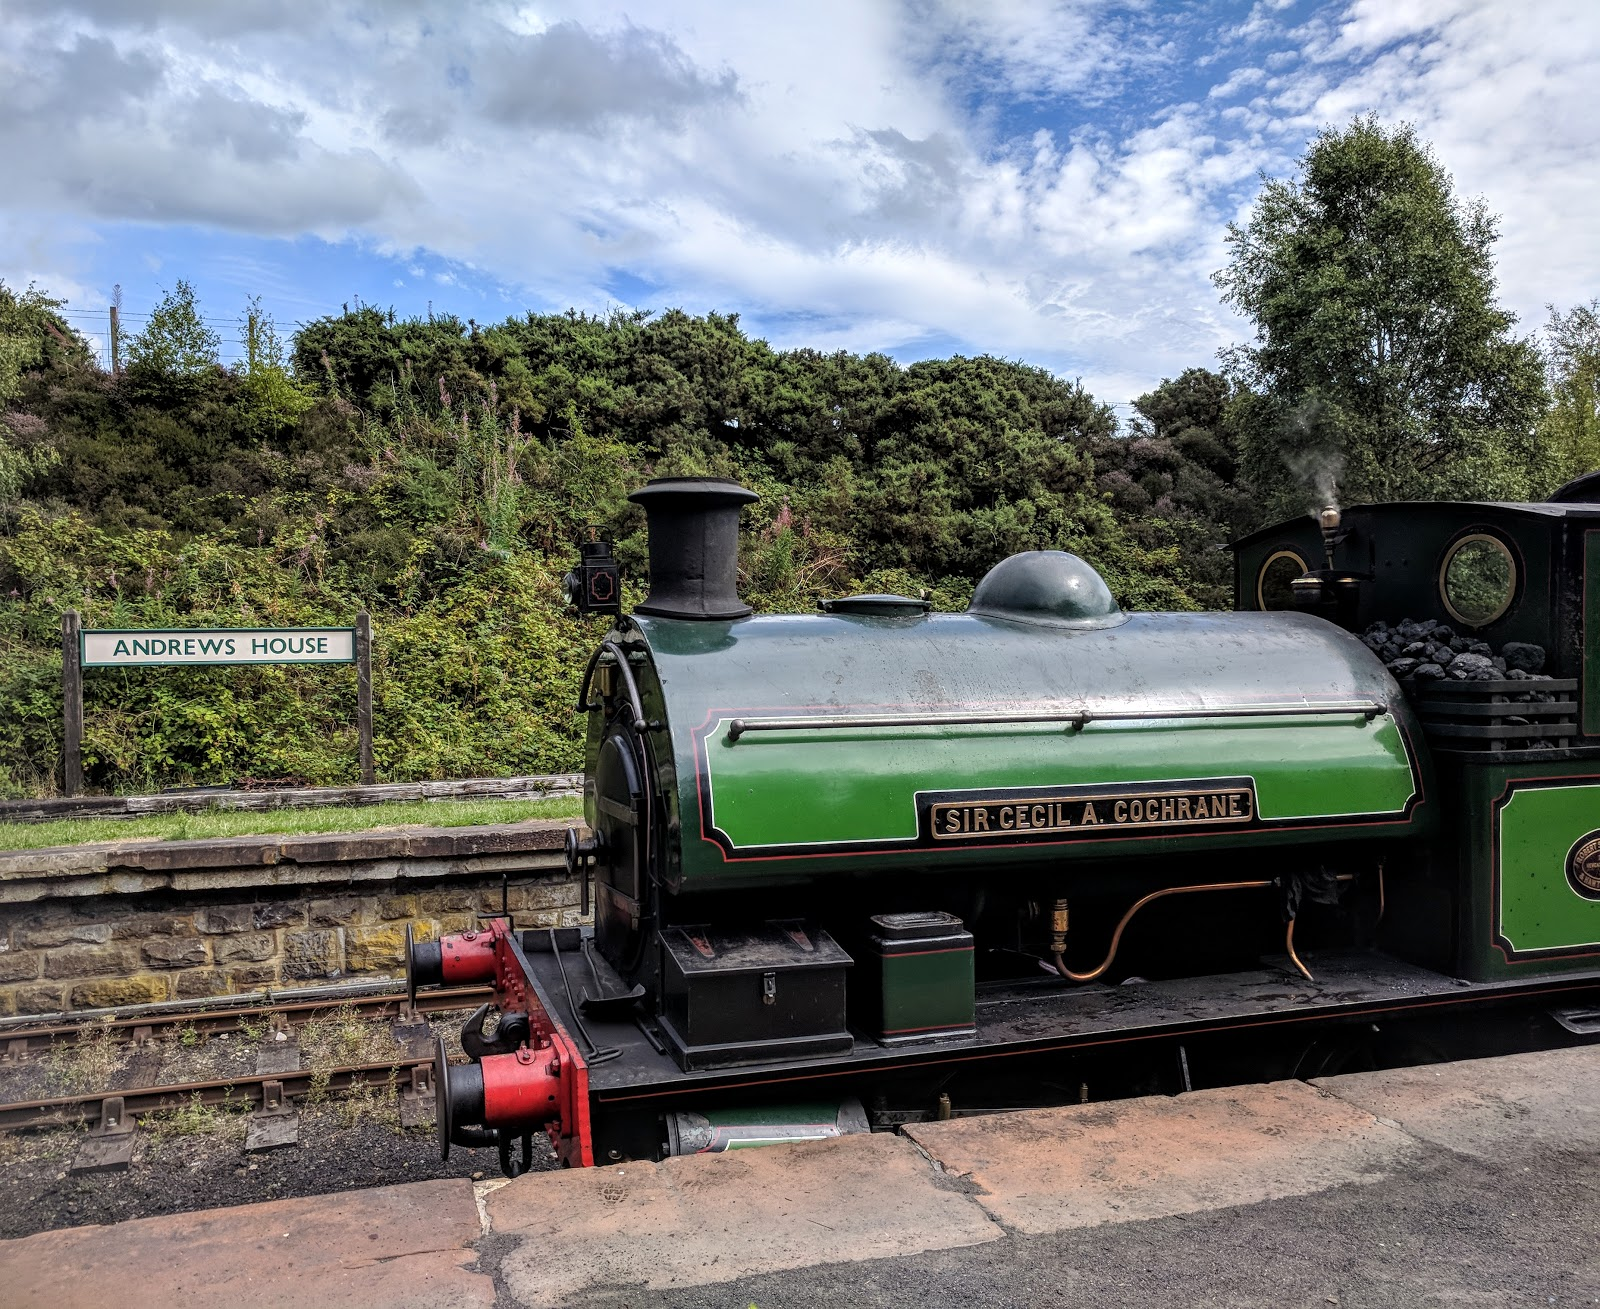 Tanfield Railway | Britain's Oldest Railway & a Picnic at Causey Arch - Andrew's House